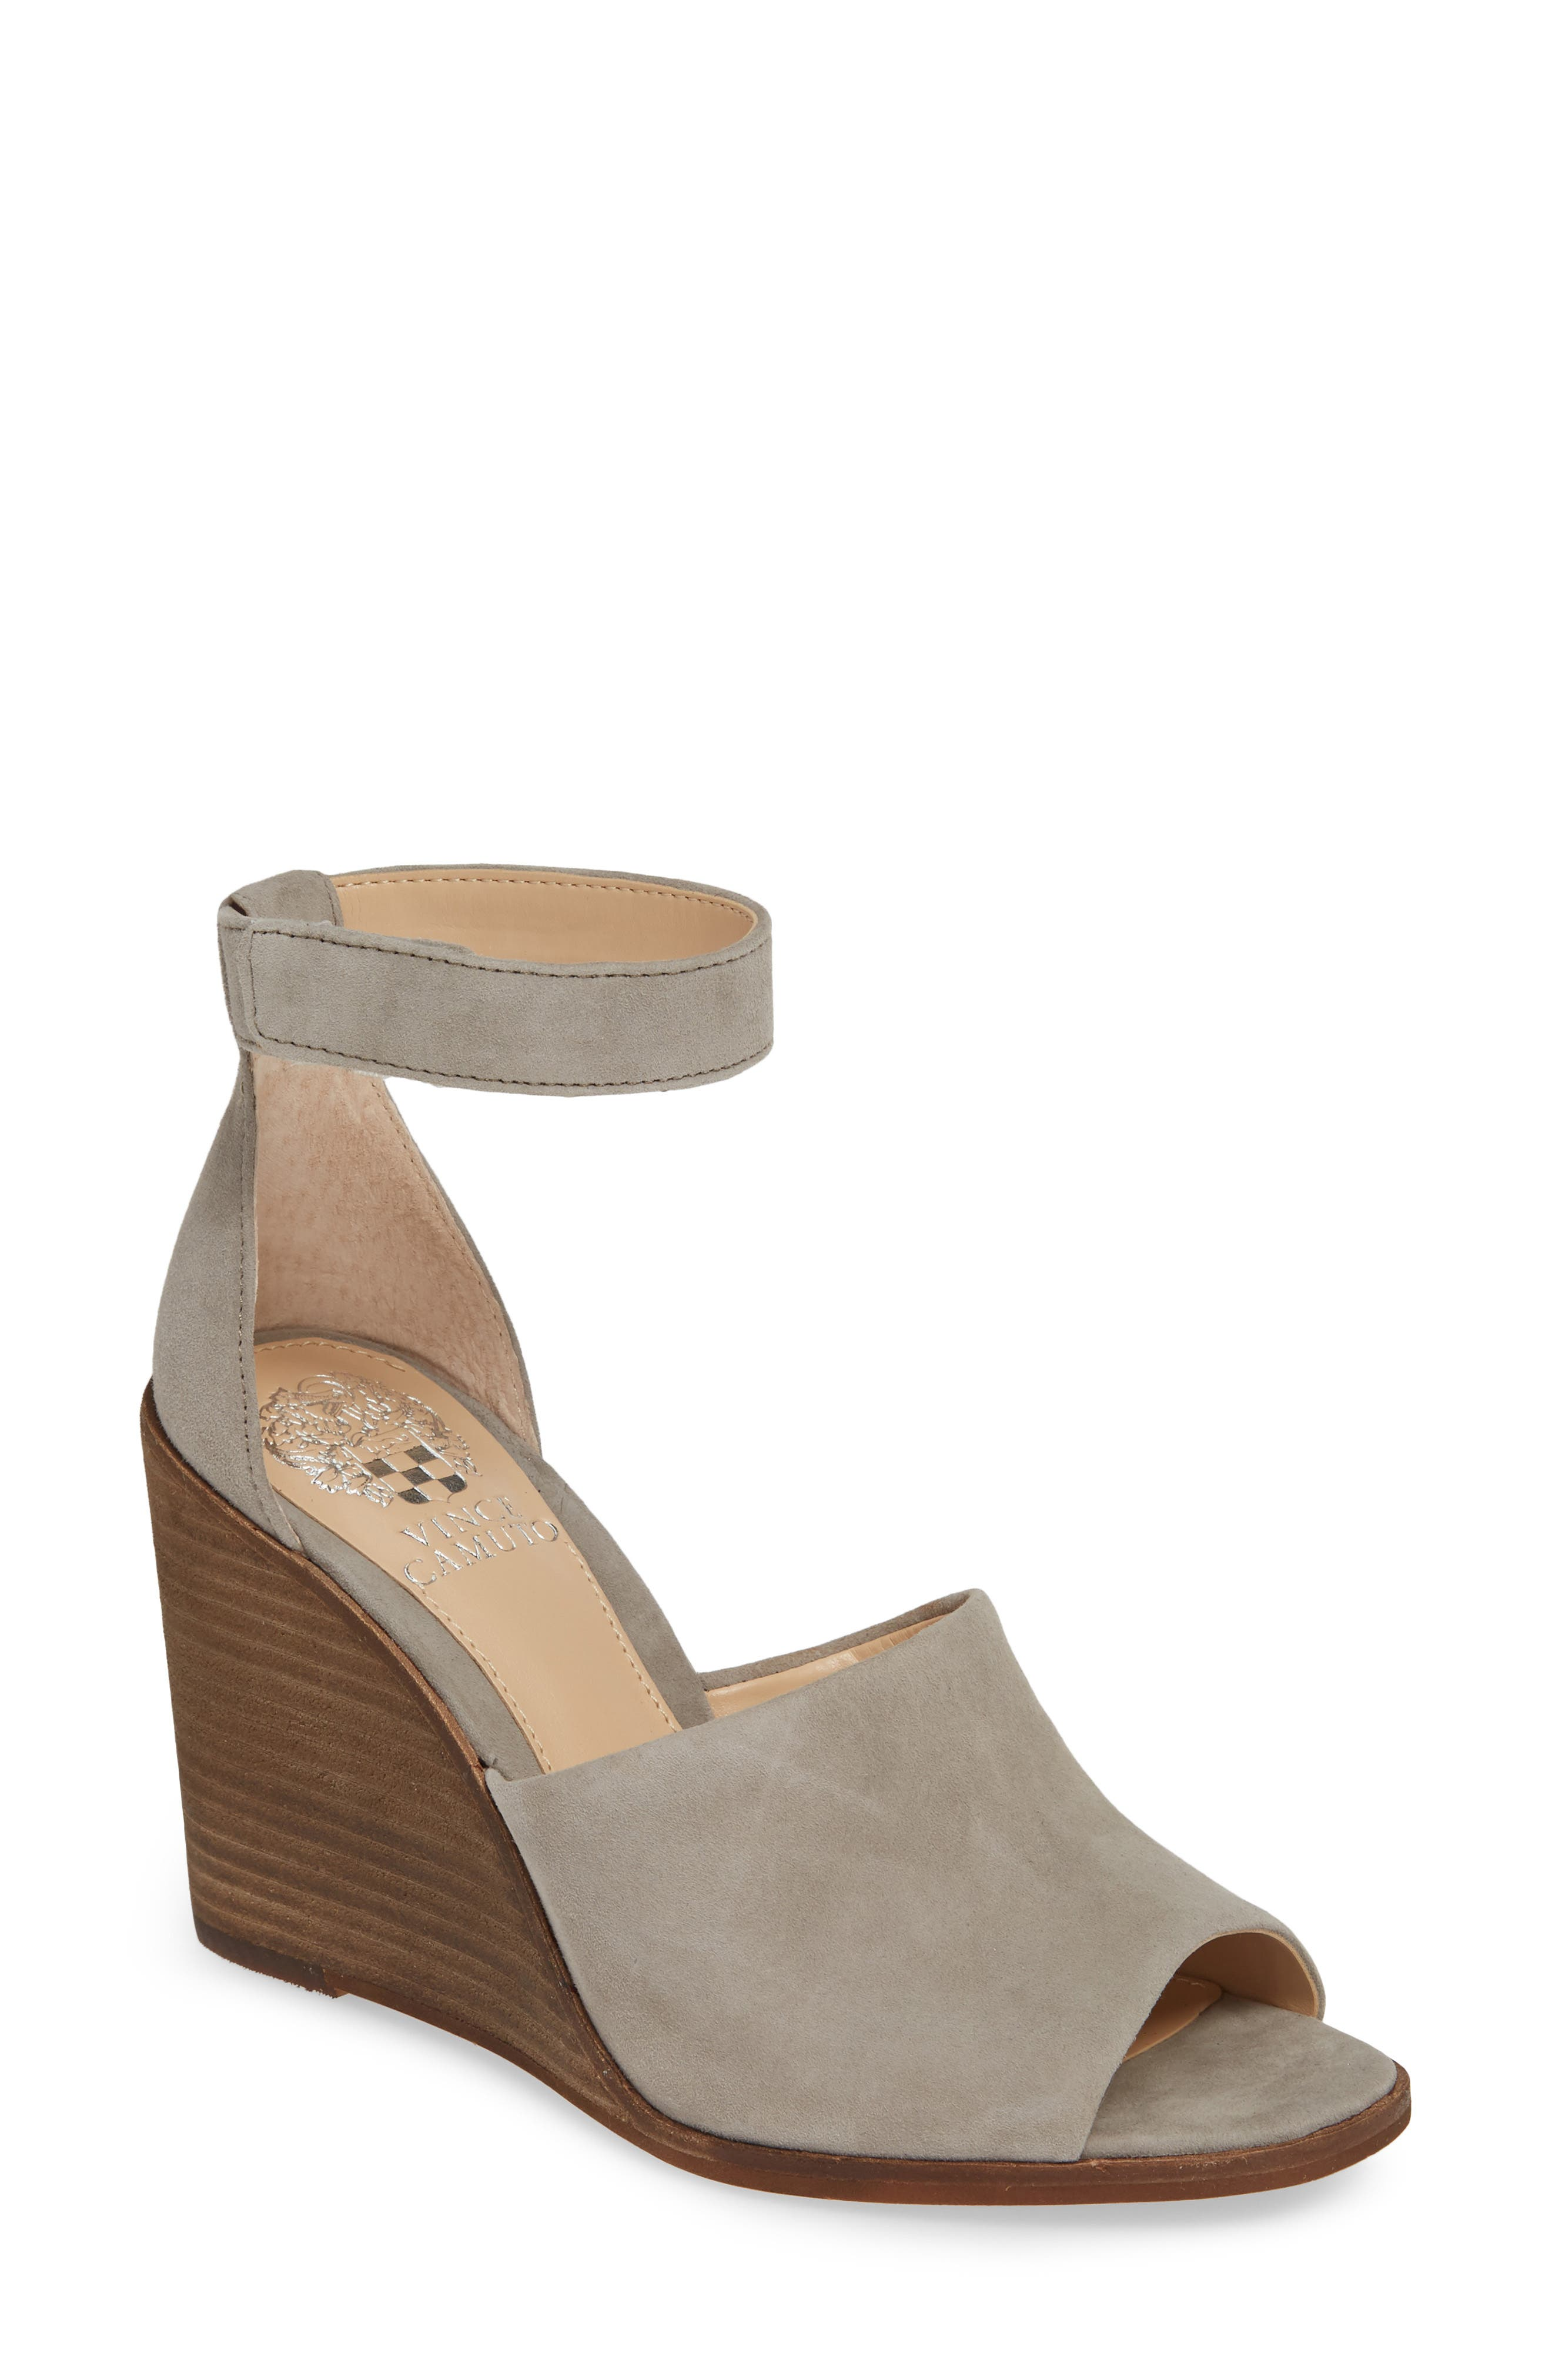 Vince Camuto Deedriana Wedge Sandal, Grey